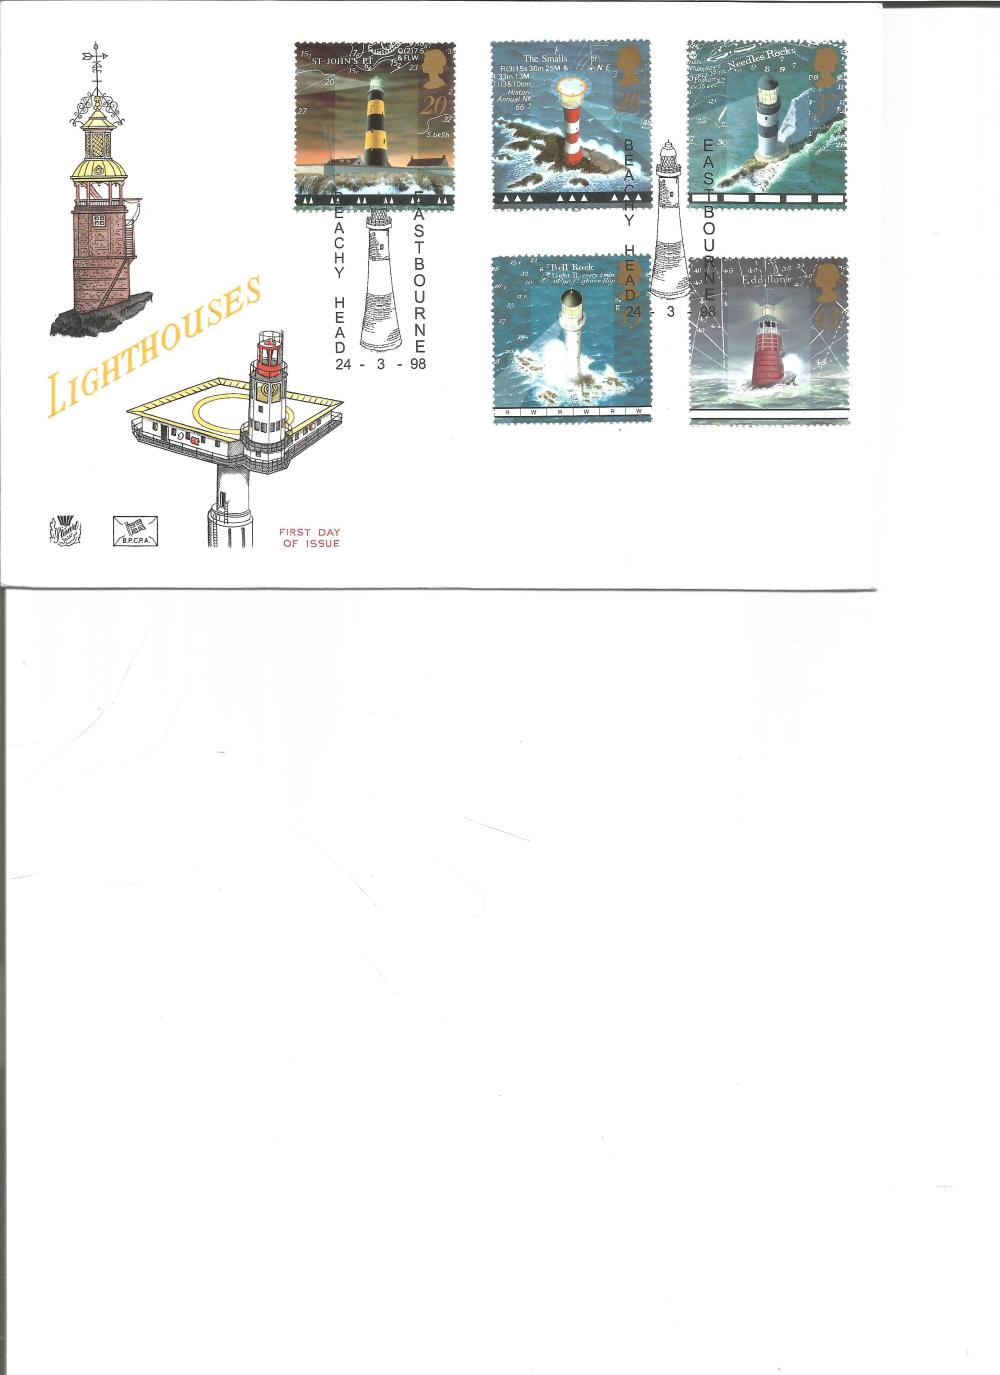 FDC Lighthouses c/w set of five commemorative stamps, Double PM Beachy Head, Eastbourne 24. 3. 98.